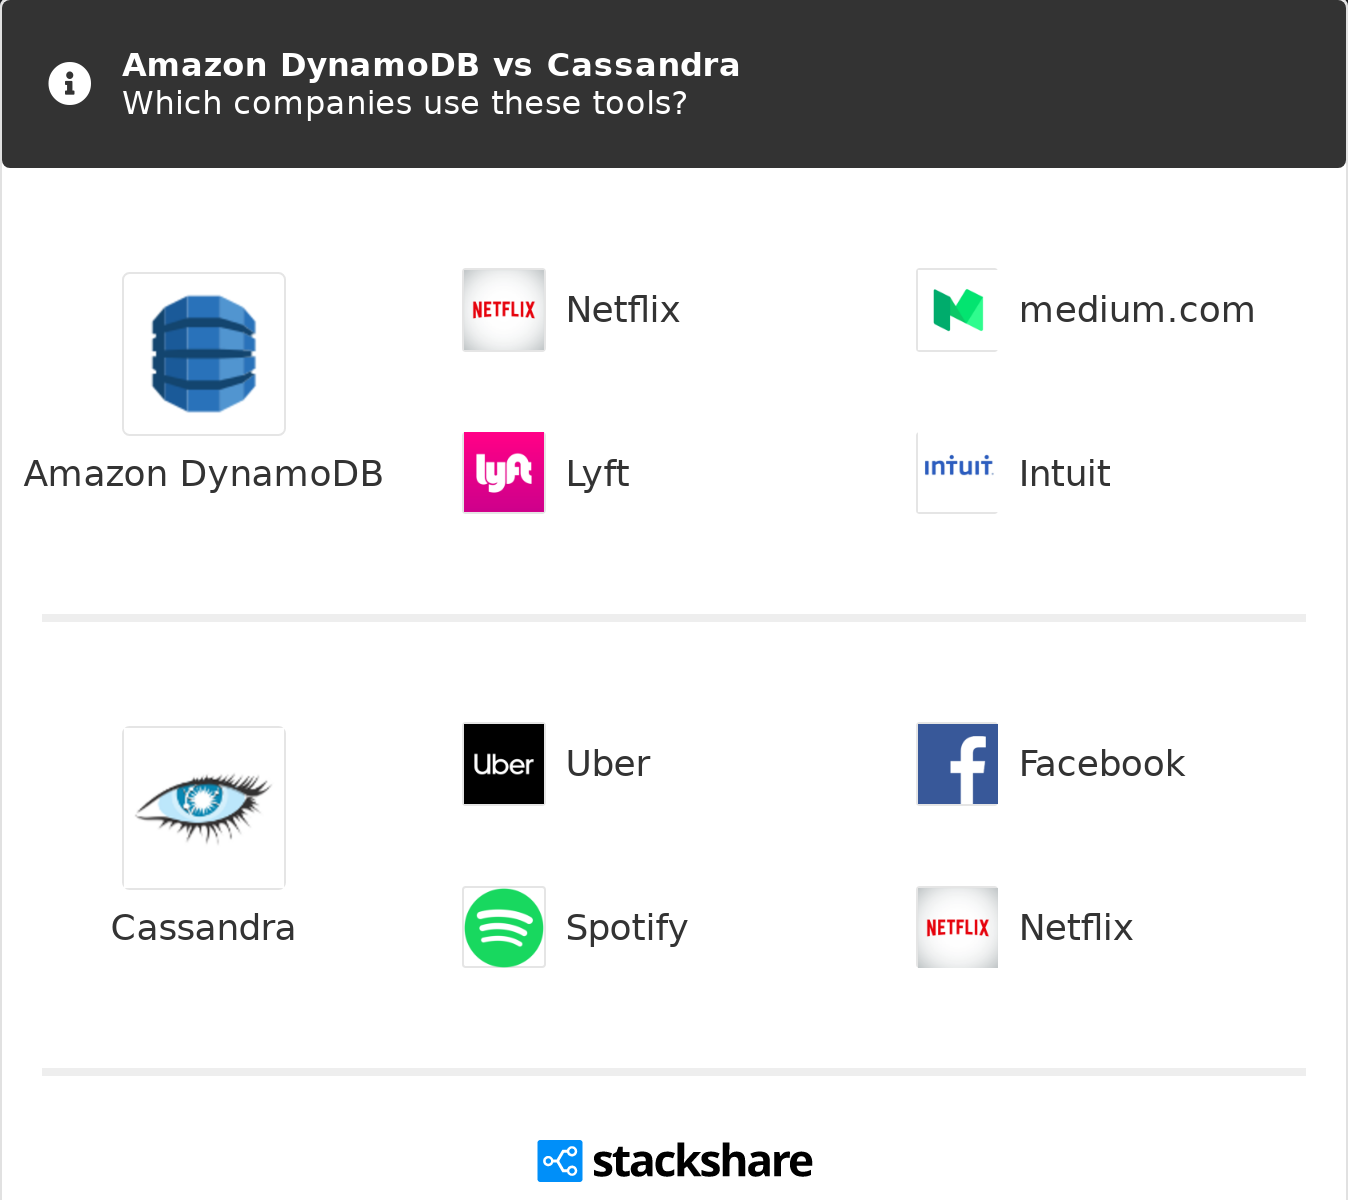 Amazon DynamoDB vs Cassandra | What are the differences?